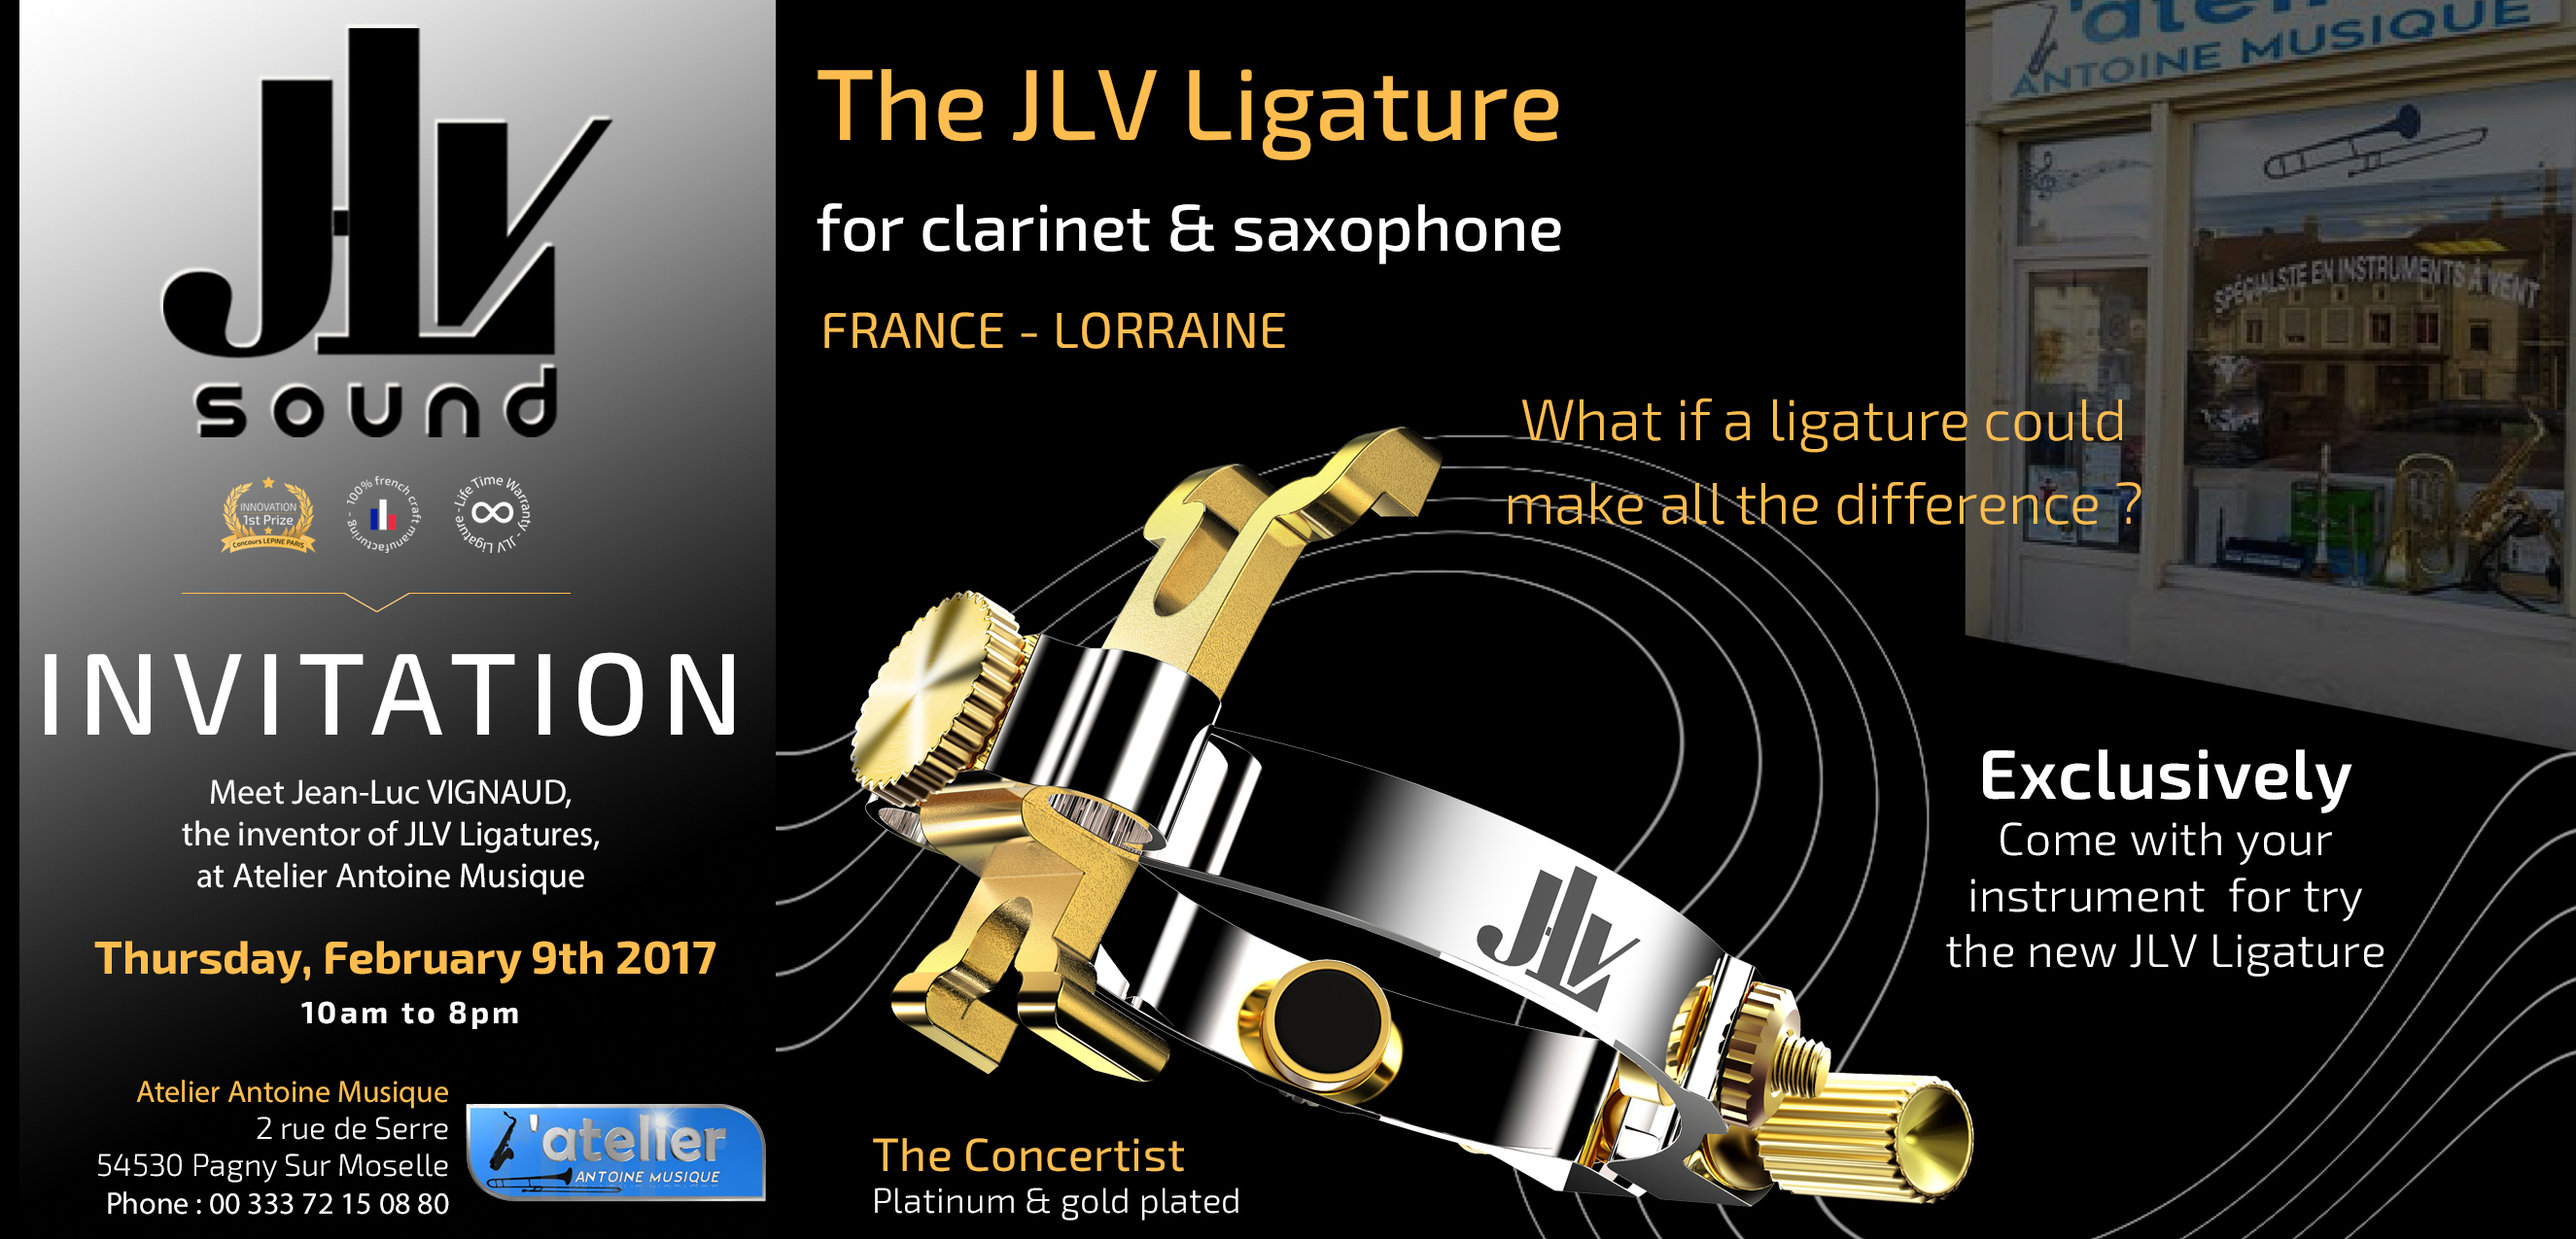 February 9, 2017 from 10 am to 8 pm, find the inventor of the JLV Ligatures at Atelier Antoine Musique